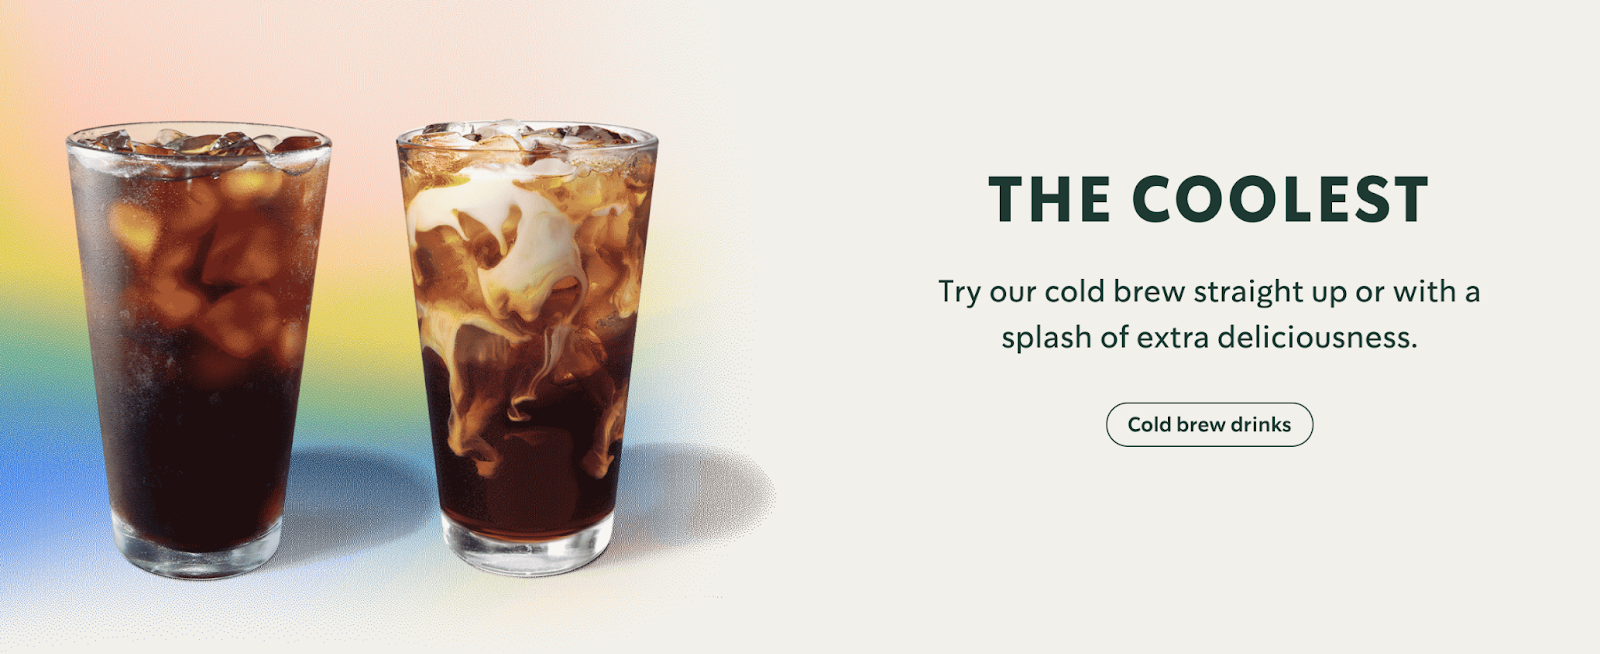 2 delicious cold brew coffees with a light and colorful background.